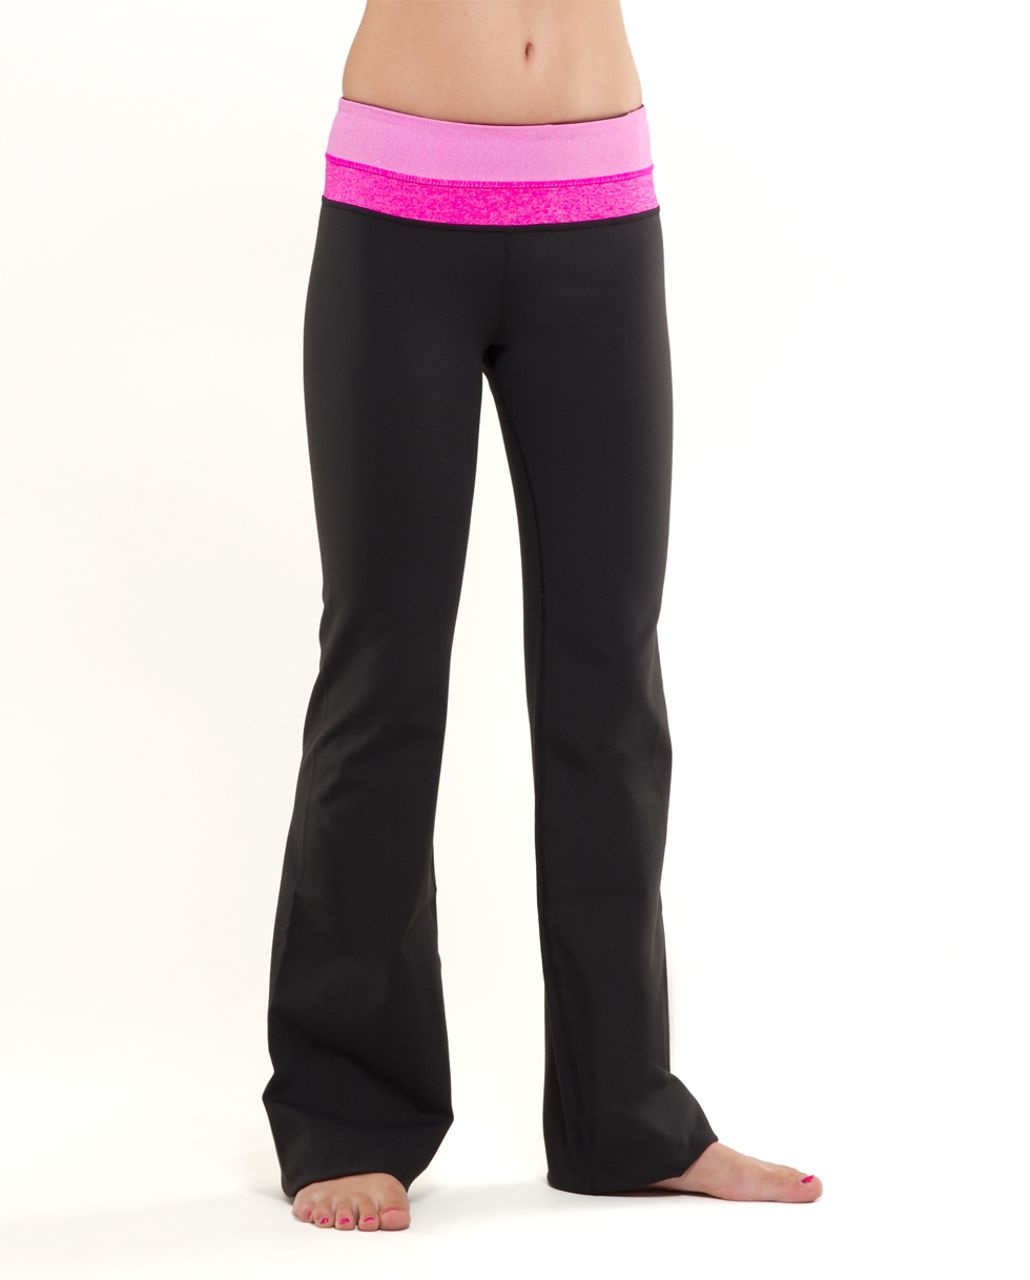 Lululemon Groove Pant (Regular) - Black /  Paris Pink White Microstripe